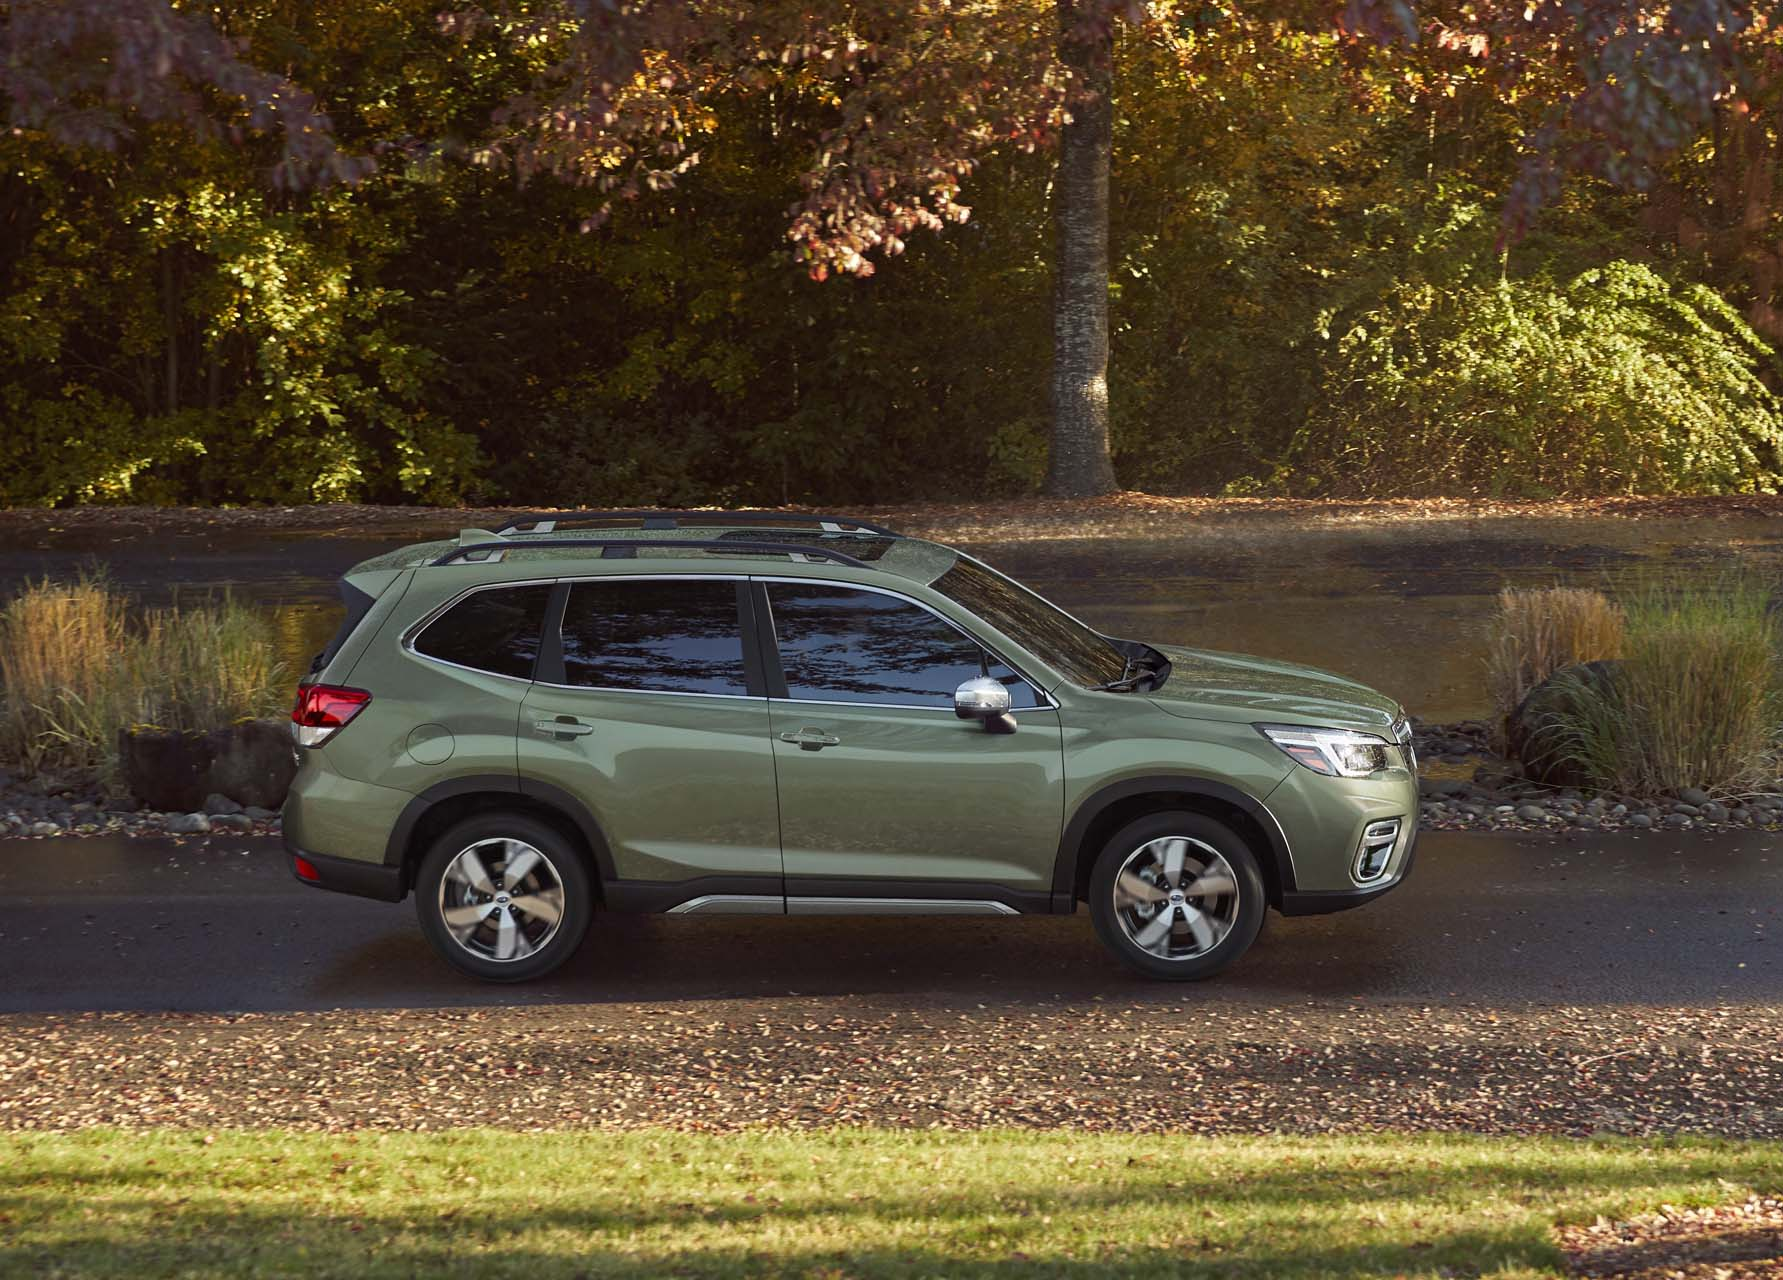 2020 Forester Review.2020 Subaru Forester Prices And Expert Review The Car